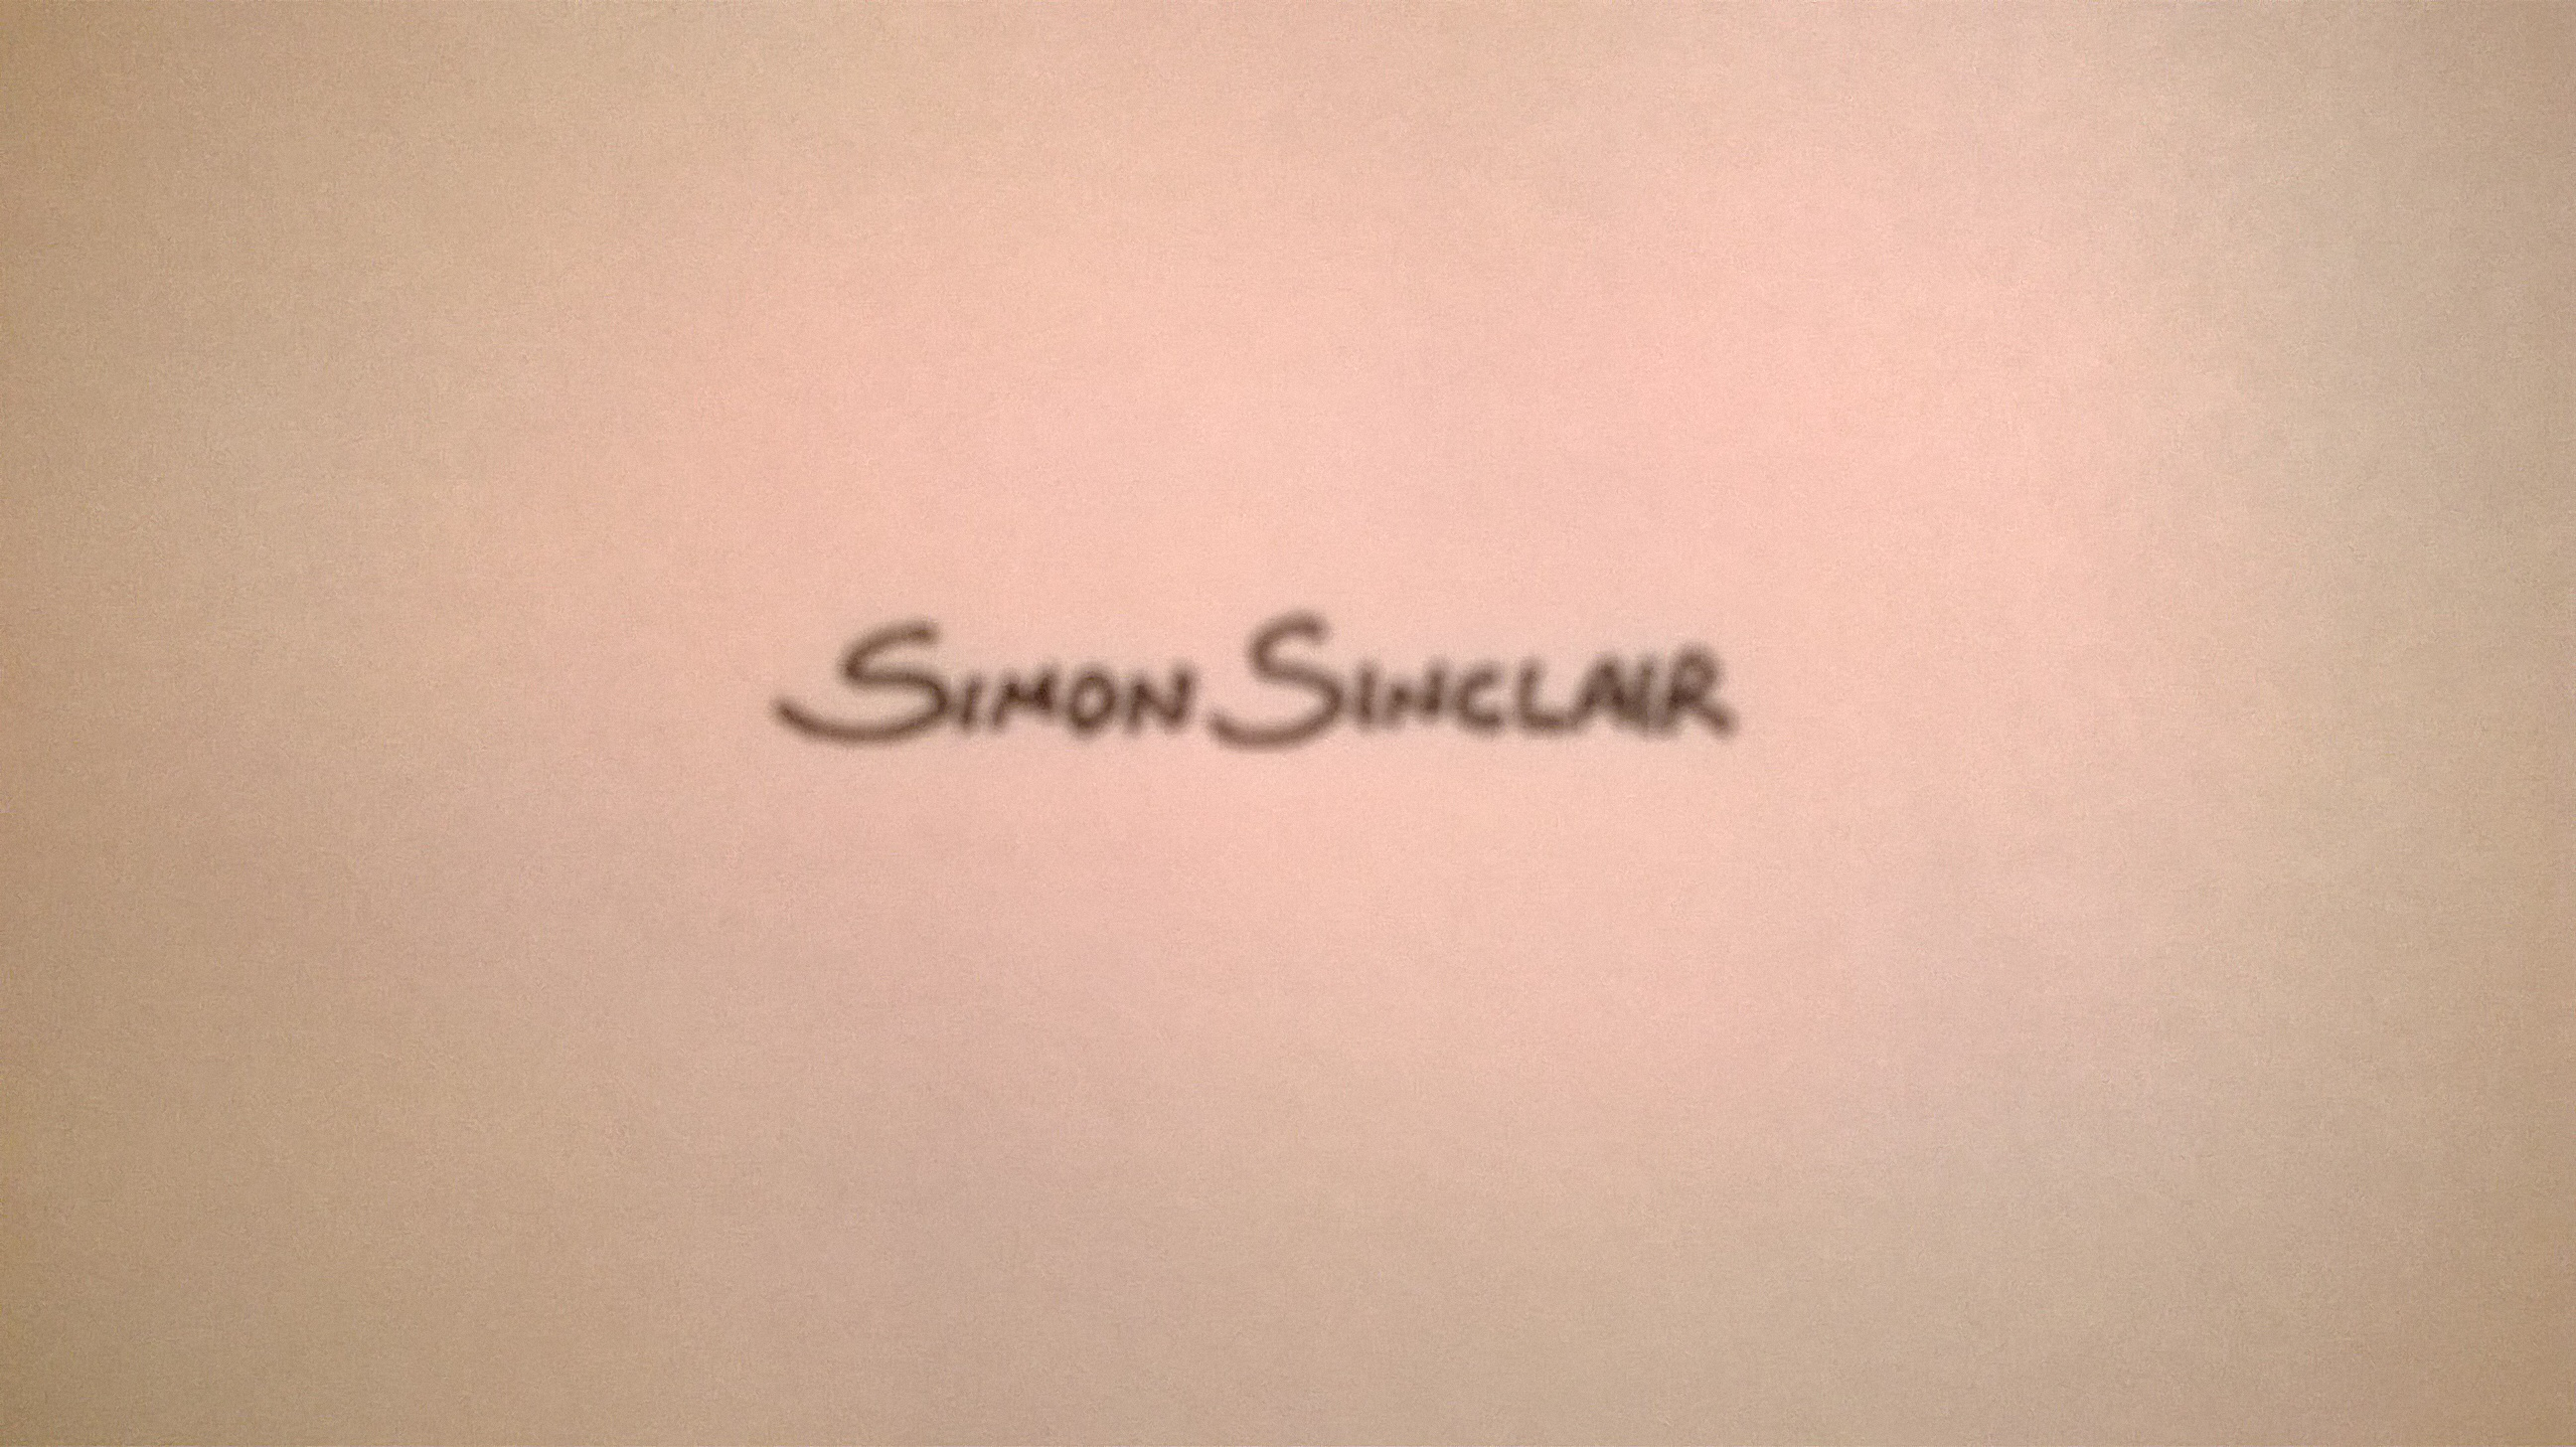 simon sinclair's Signature